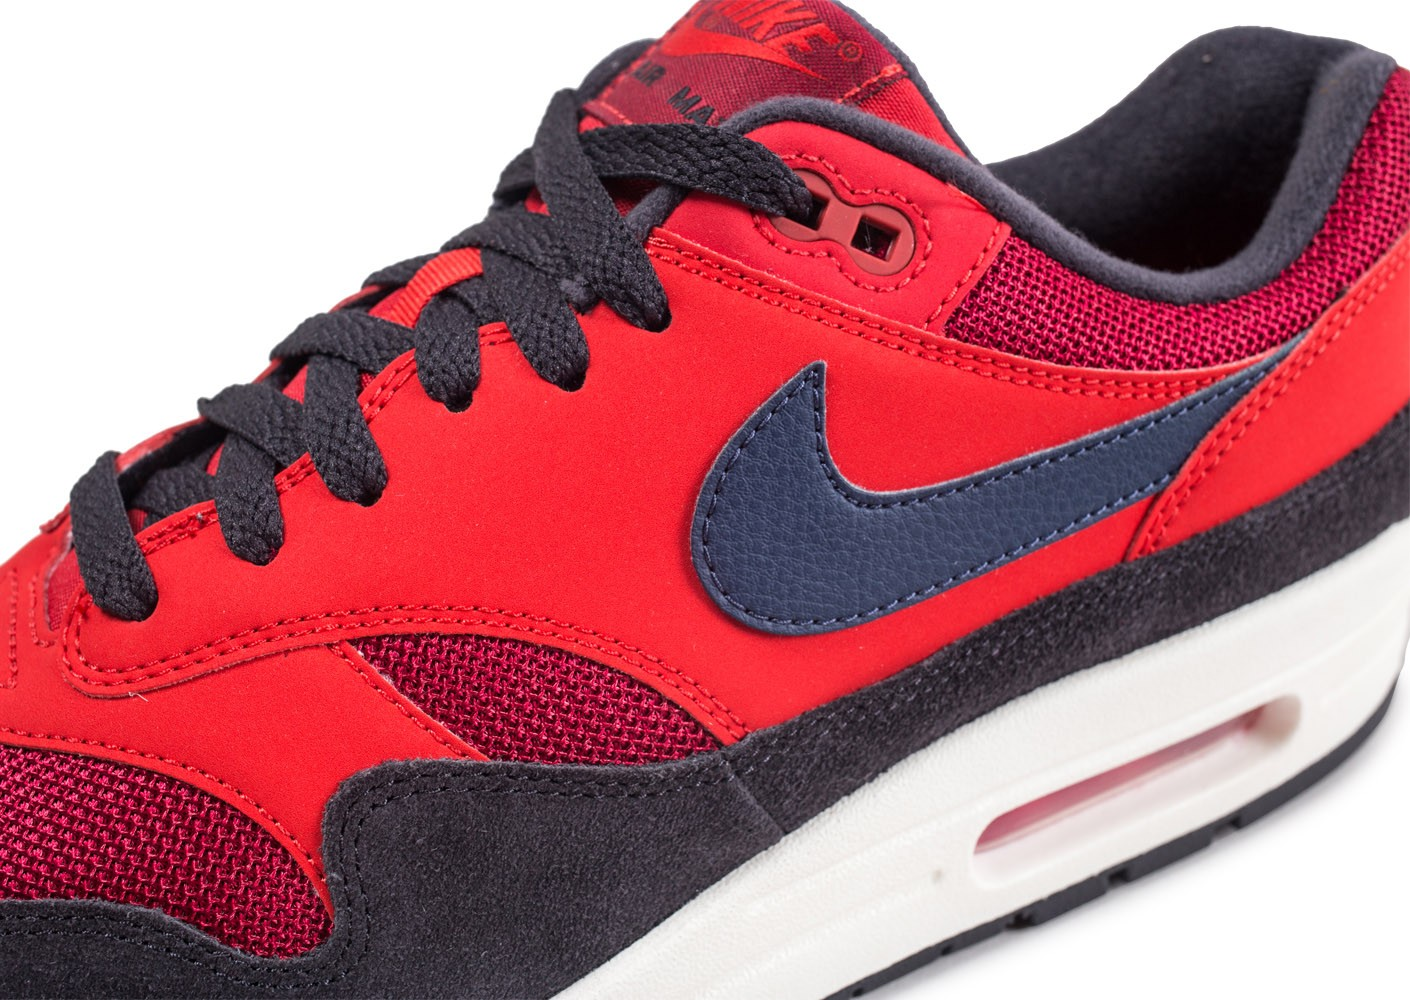 buy popular c5518 0a727 homme Chaussures Air Chausport Max Baskets Nike 1 rouge BnYfZ1xv